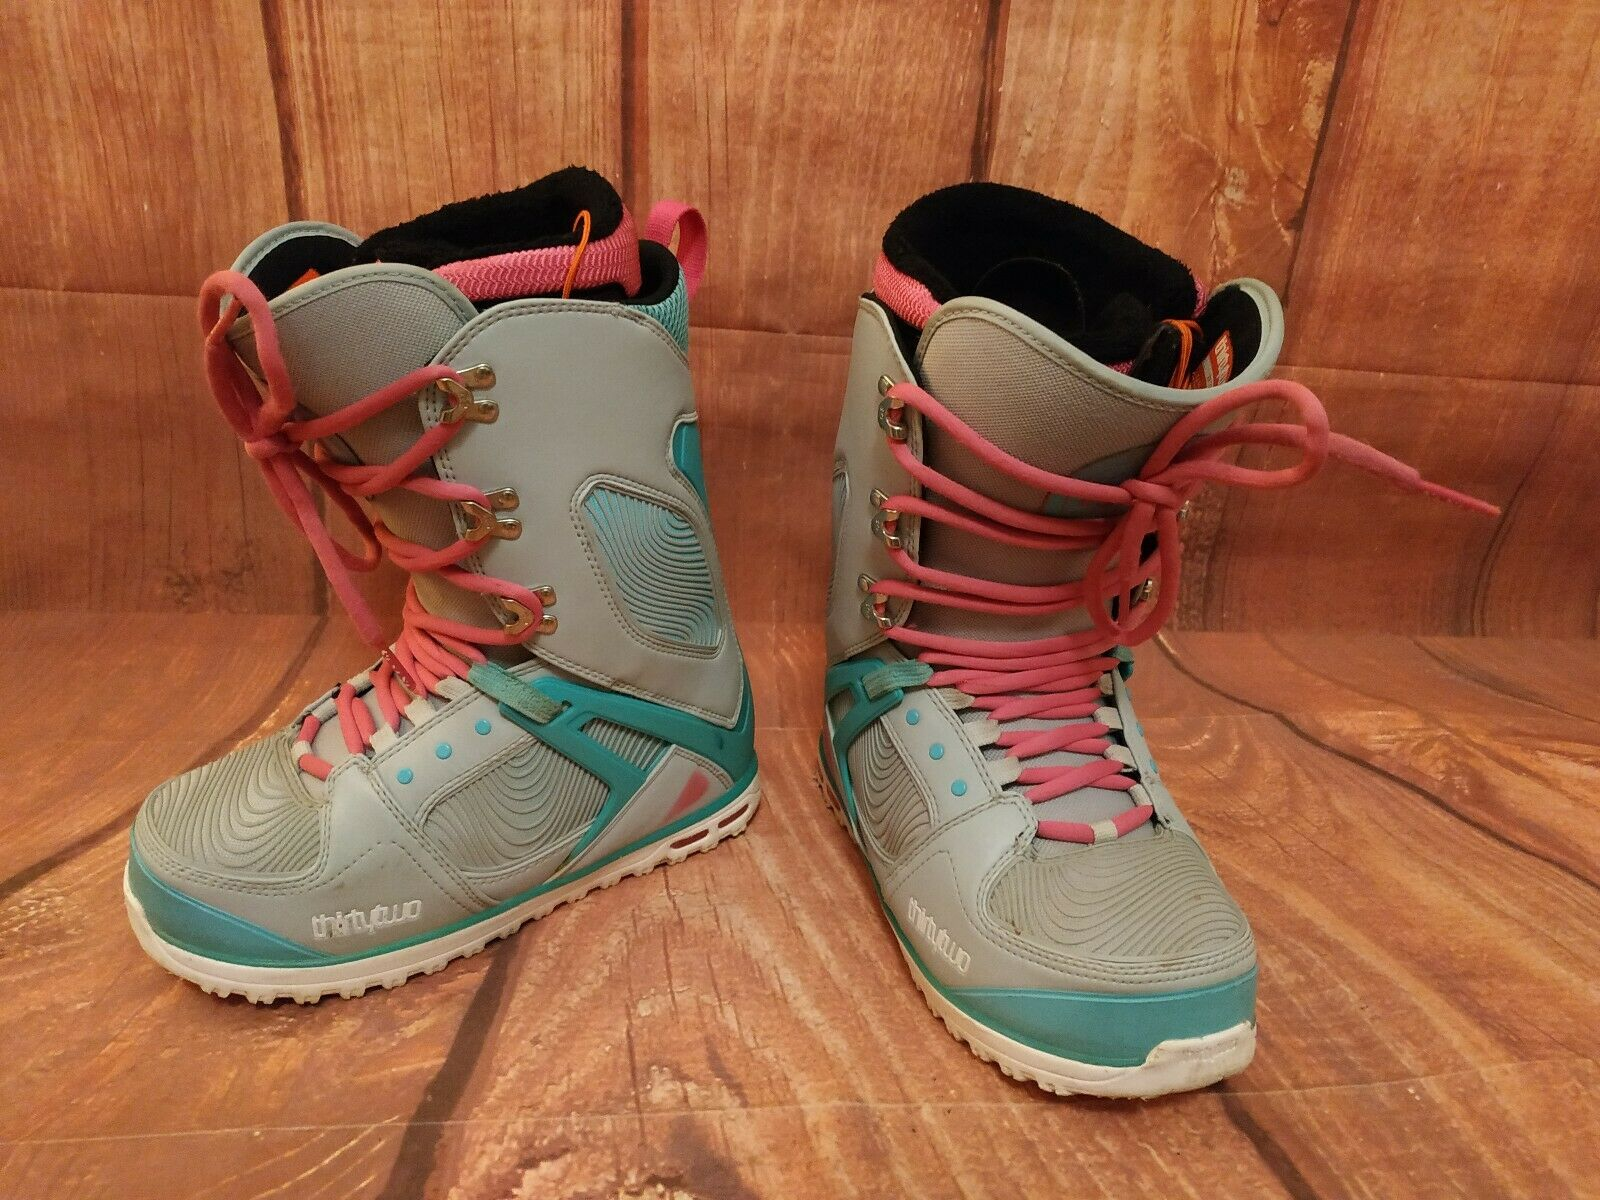 Women's snowboard boots size 5.5 THIRTYTWO TM-2 London 977   considerate service